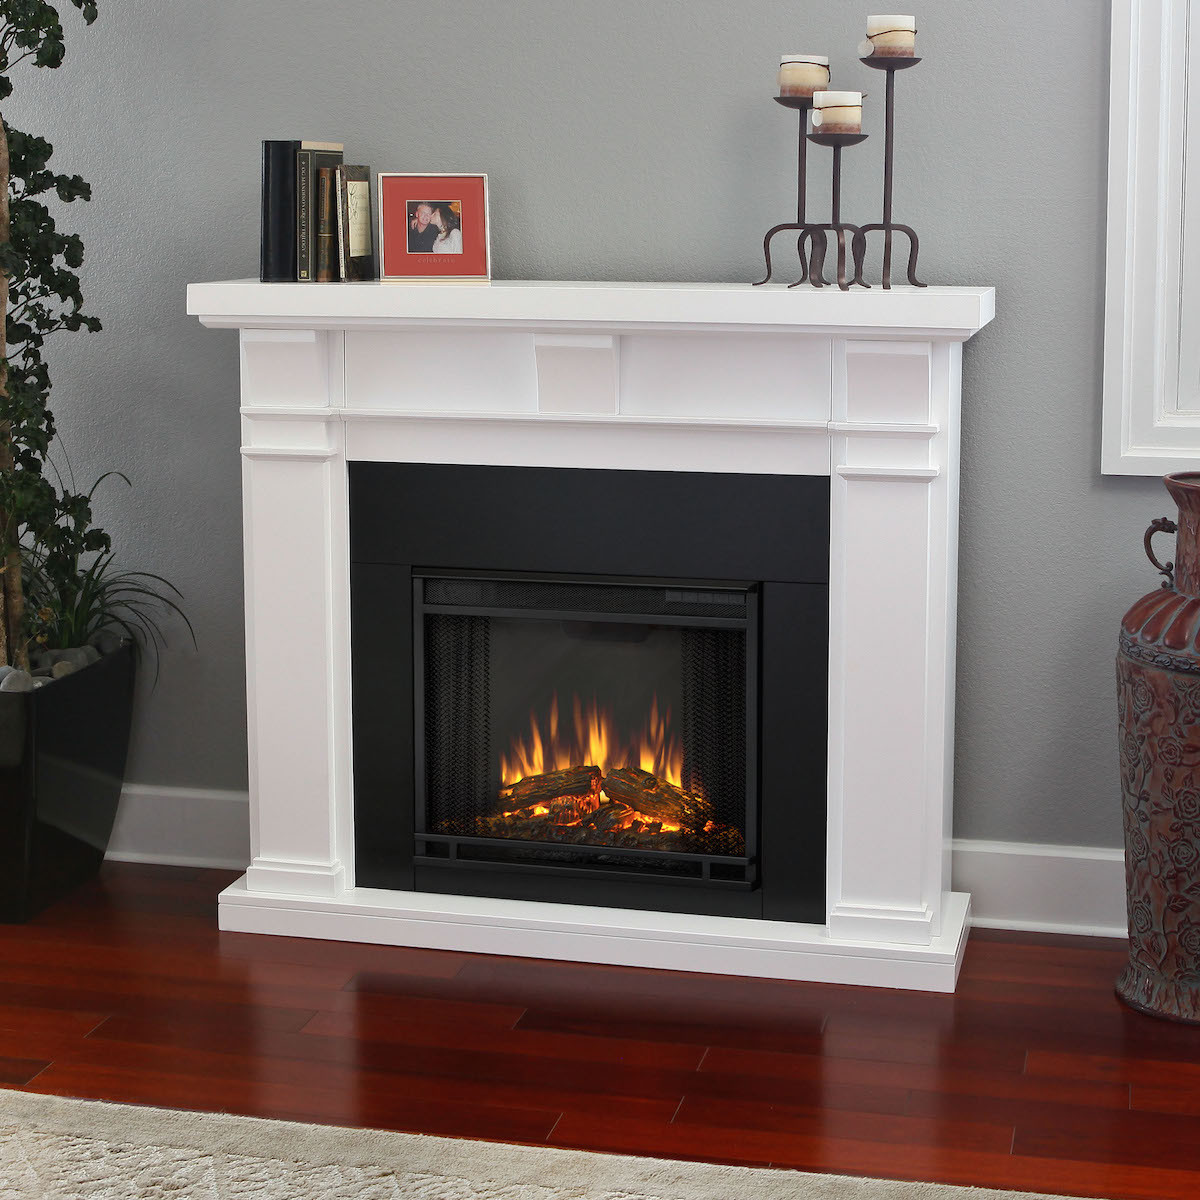 Best ideas about Real Flame Fireplace . Save or Pin Real Flame Porter Electric Fireplace in White Now.